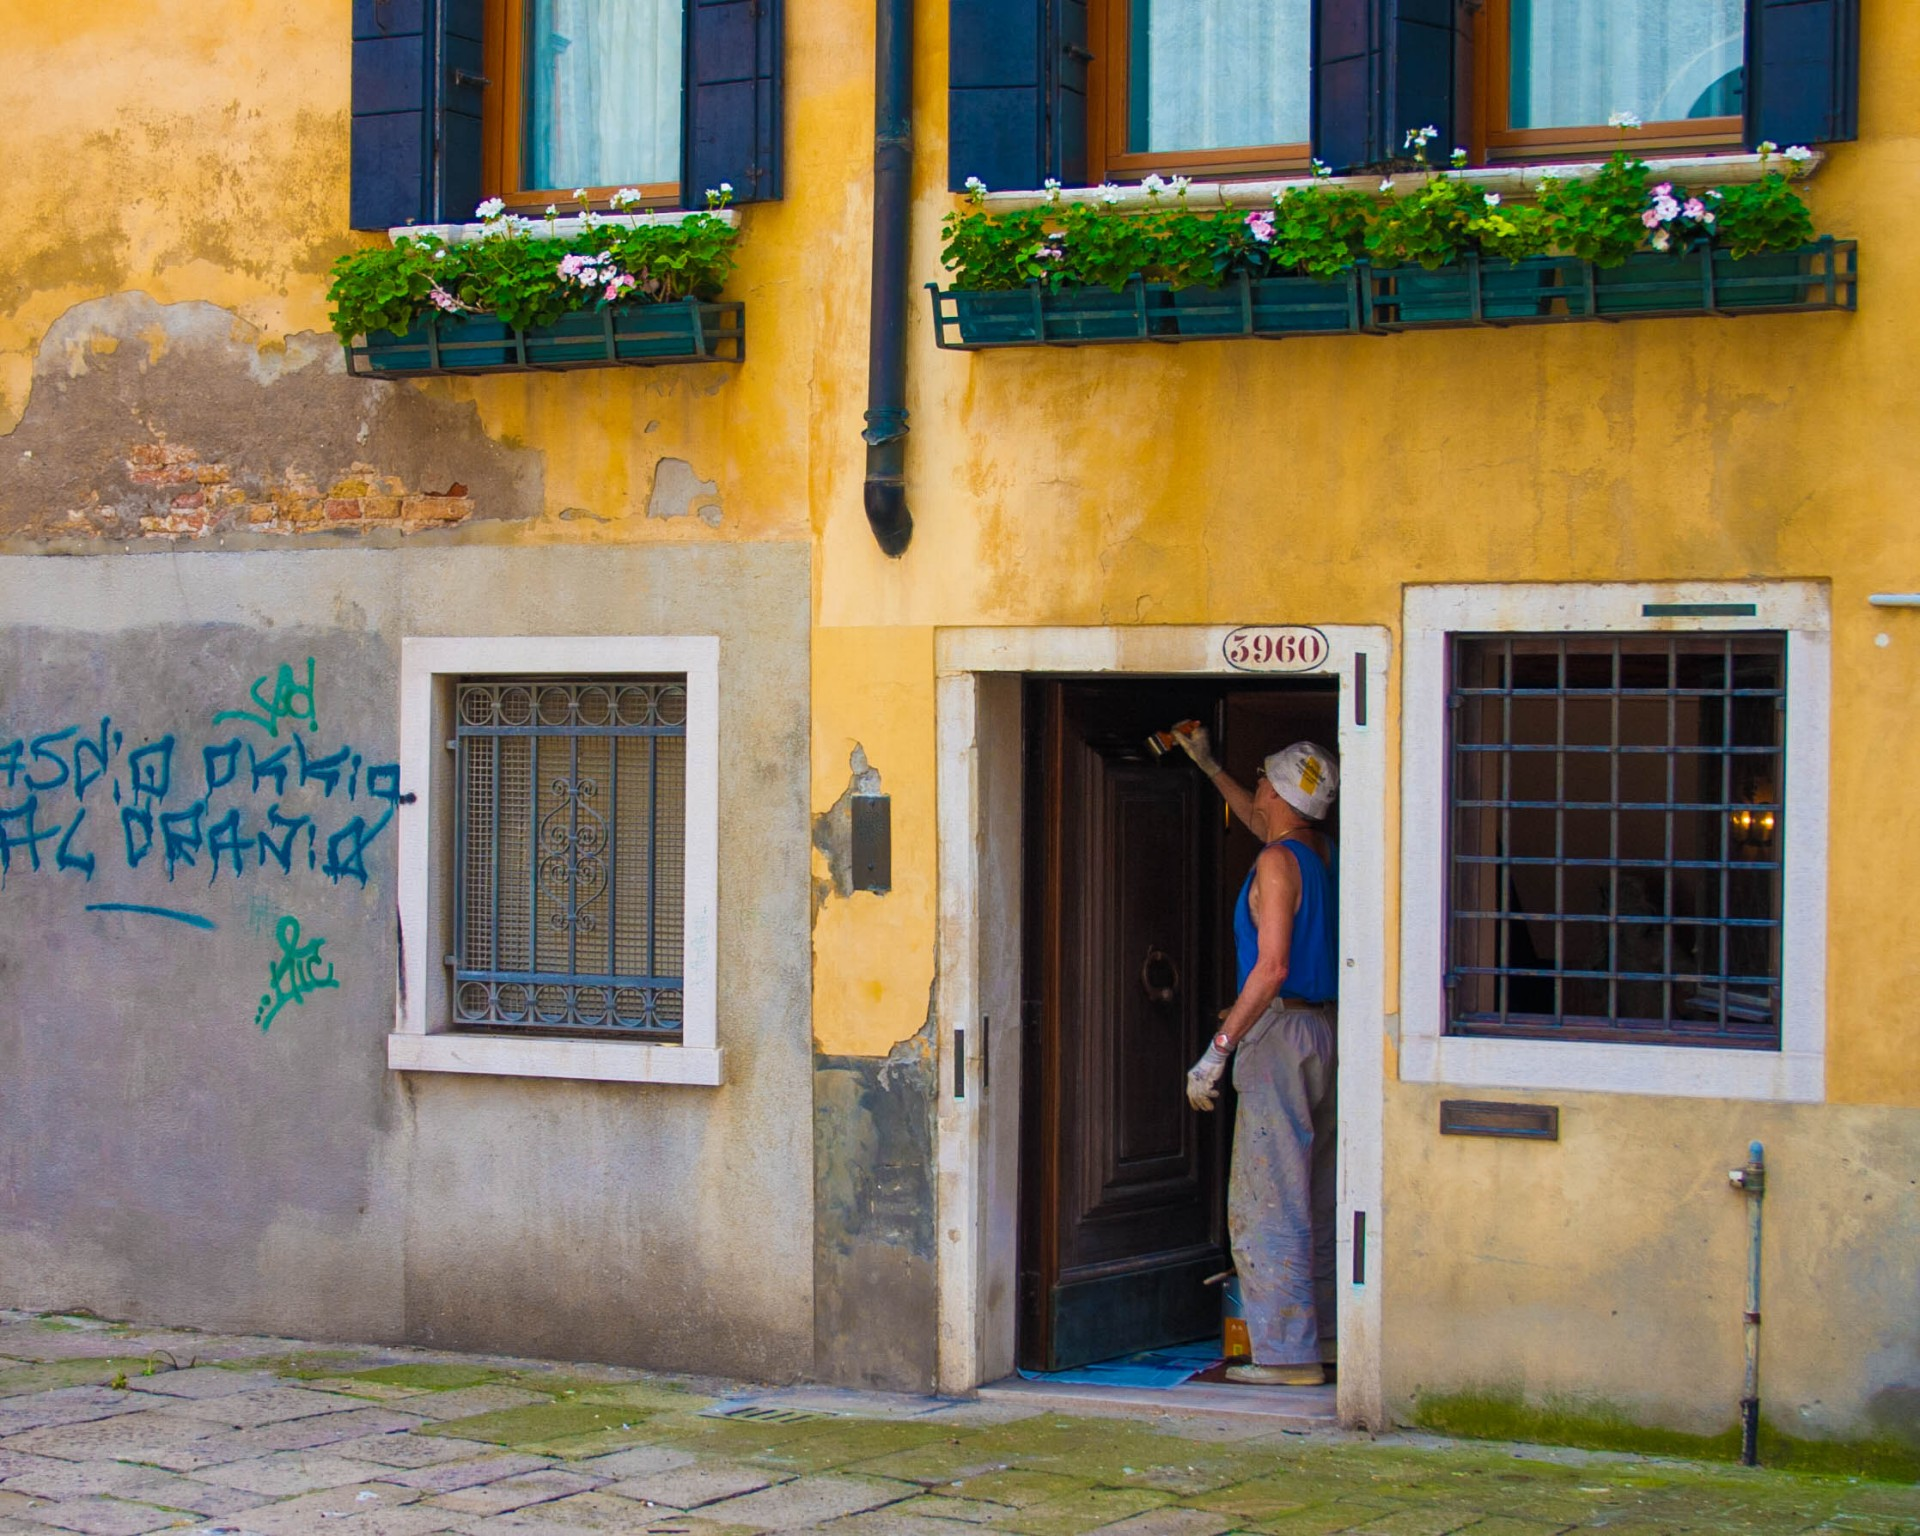 A man paints the white door frame of a yellow house in Venice, Italy - Lost in Venice